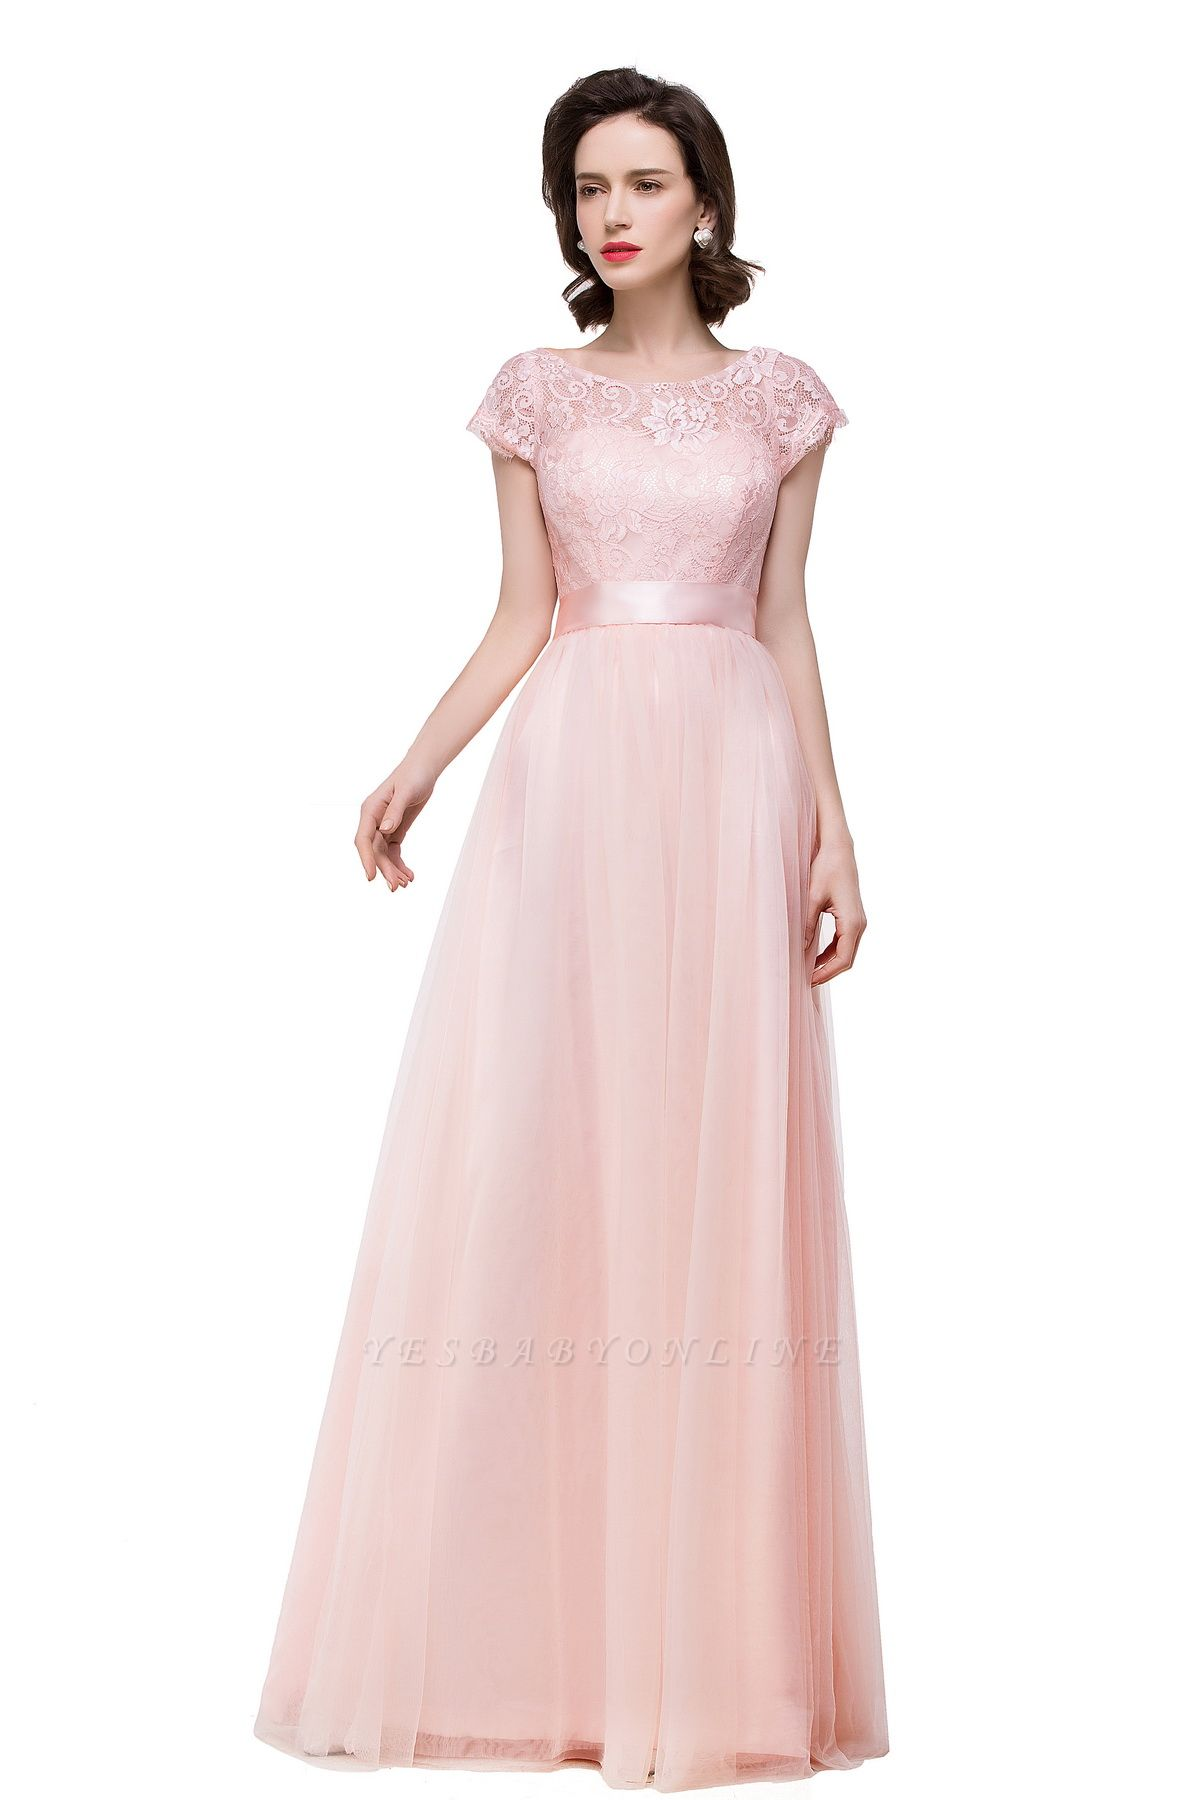 ELLIANA | Elegant Short Sleeves A-line Chiffon Bridesmaid Dresses with Ribbon Bow Sash